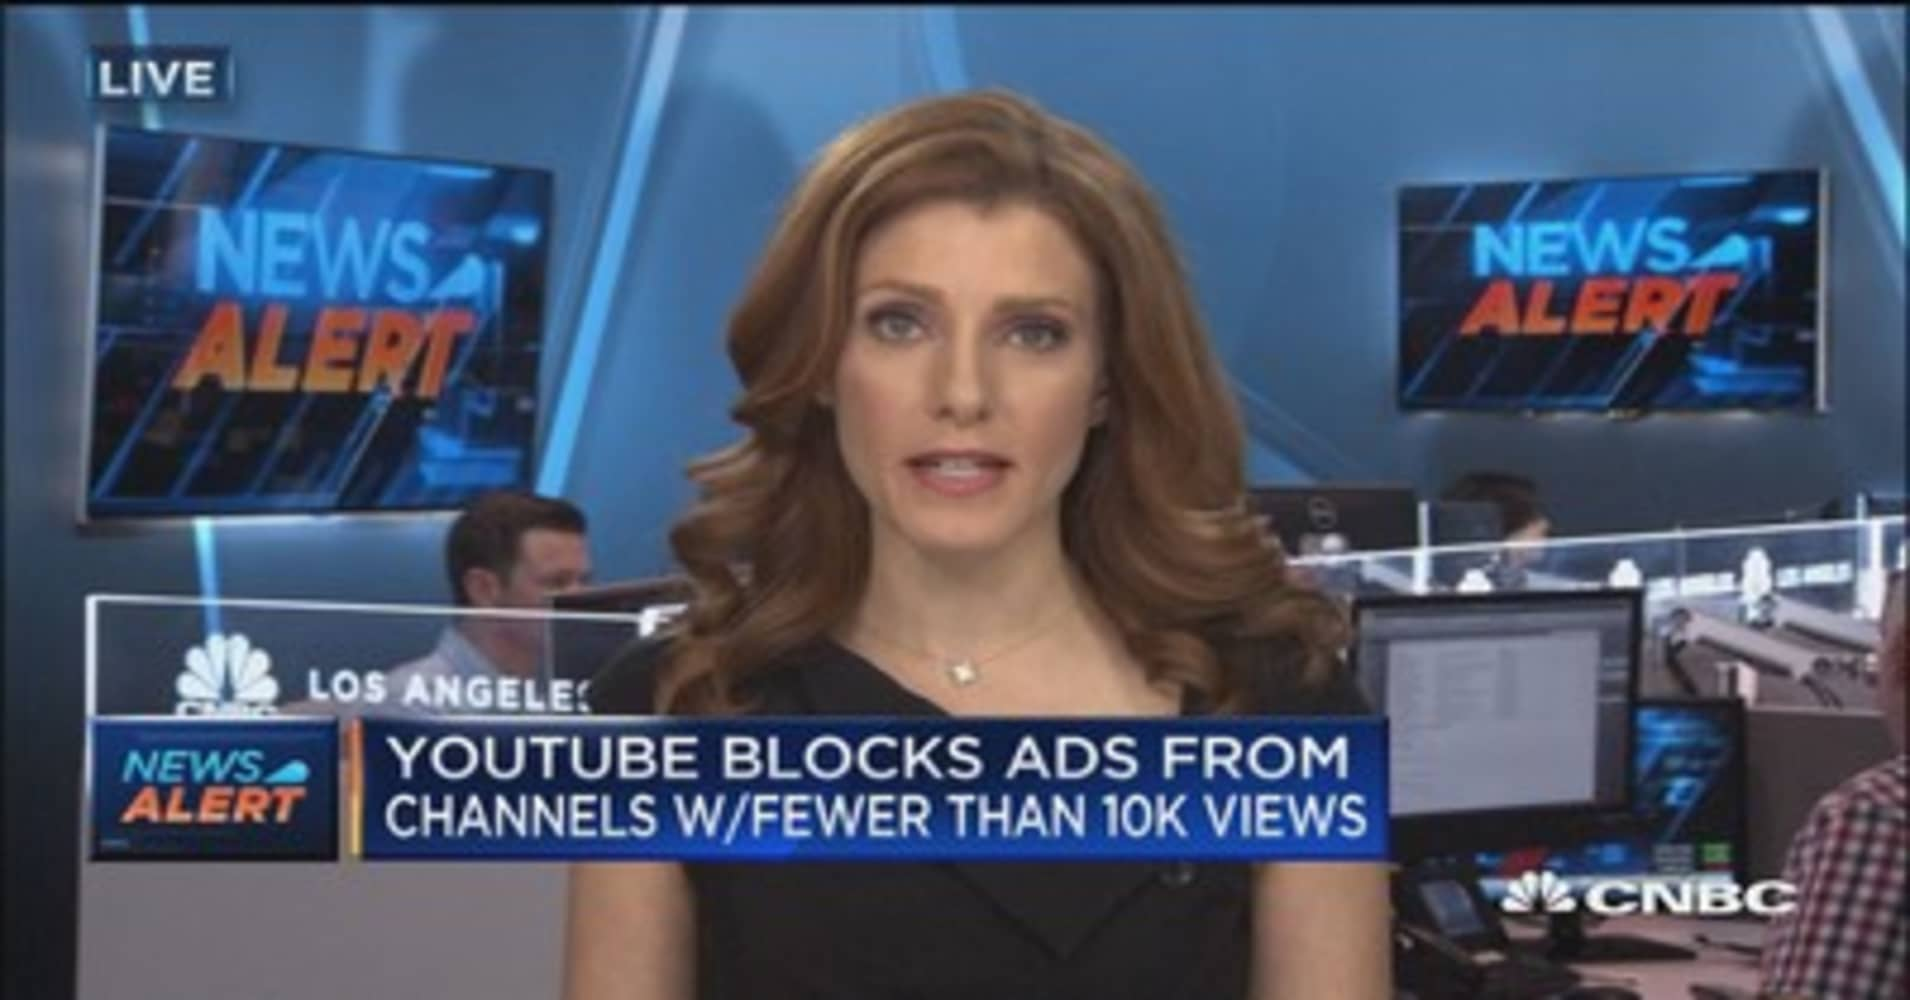 YouTube will no longer allow ads on channels with less than 10,000 views